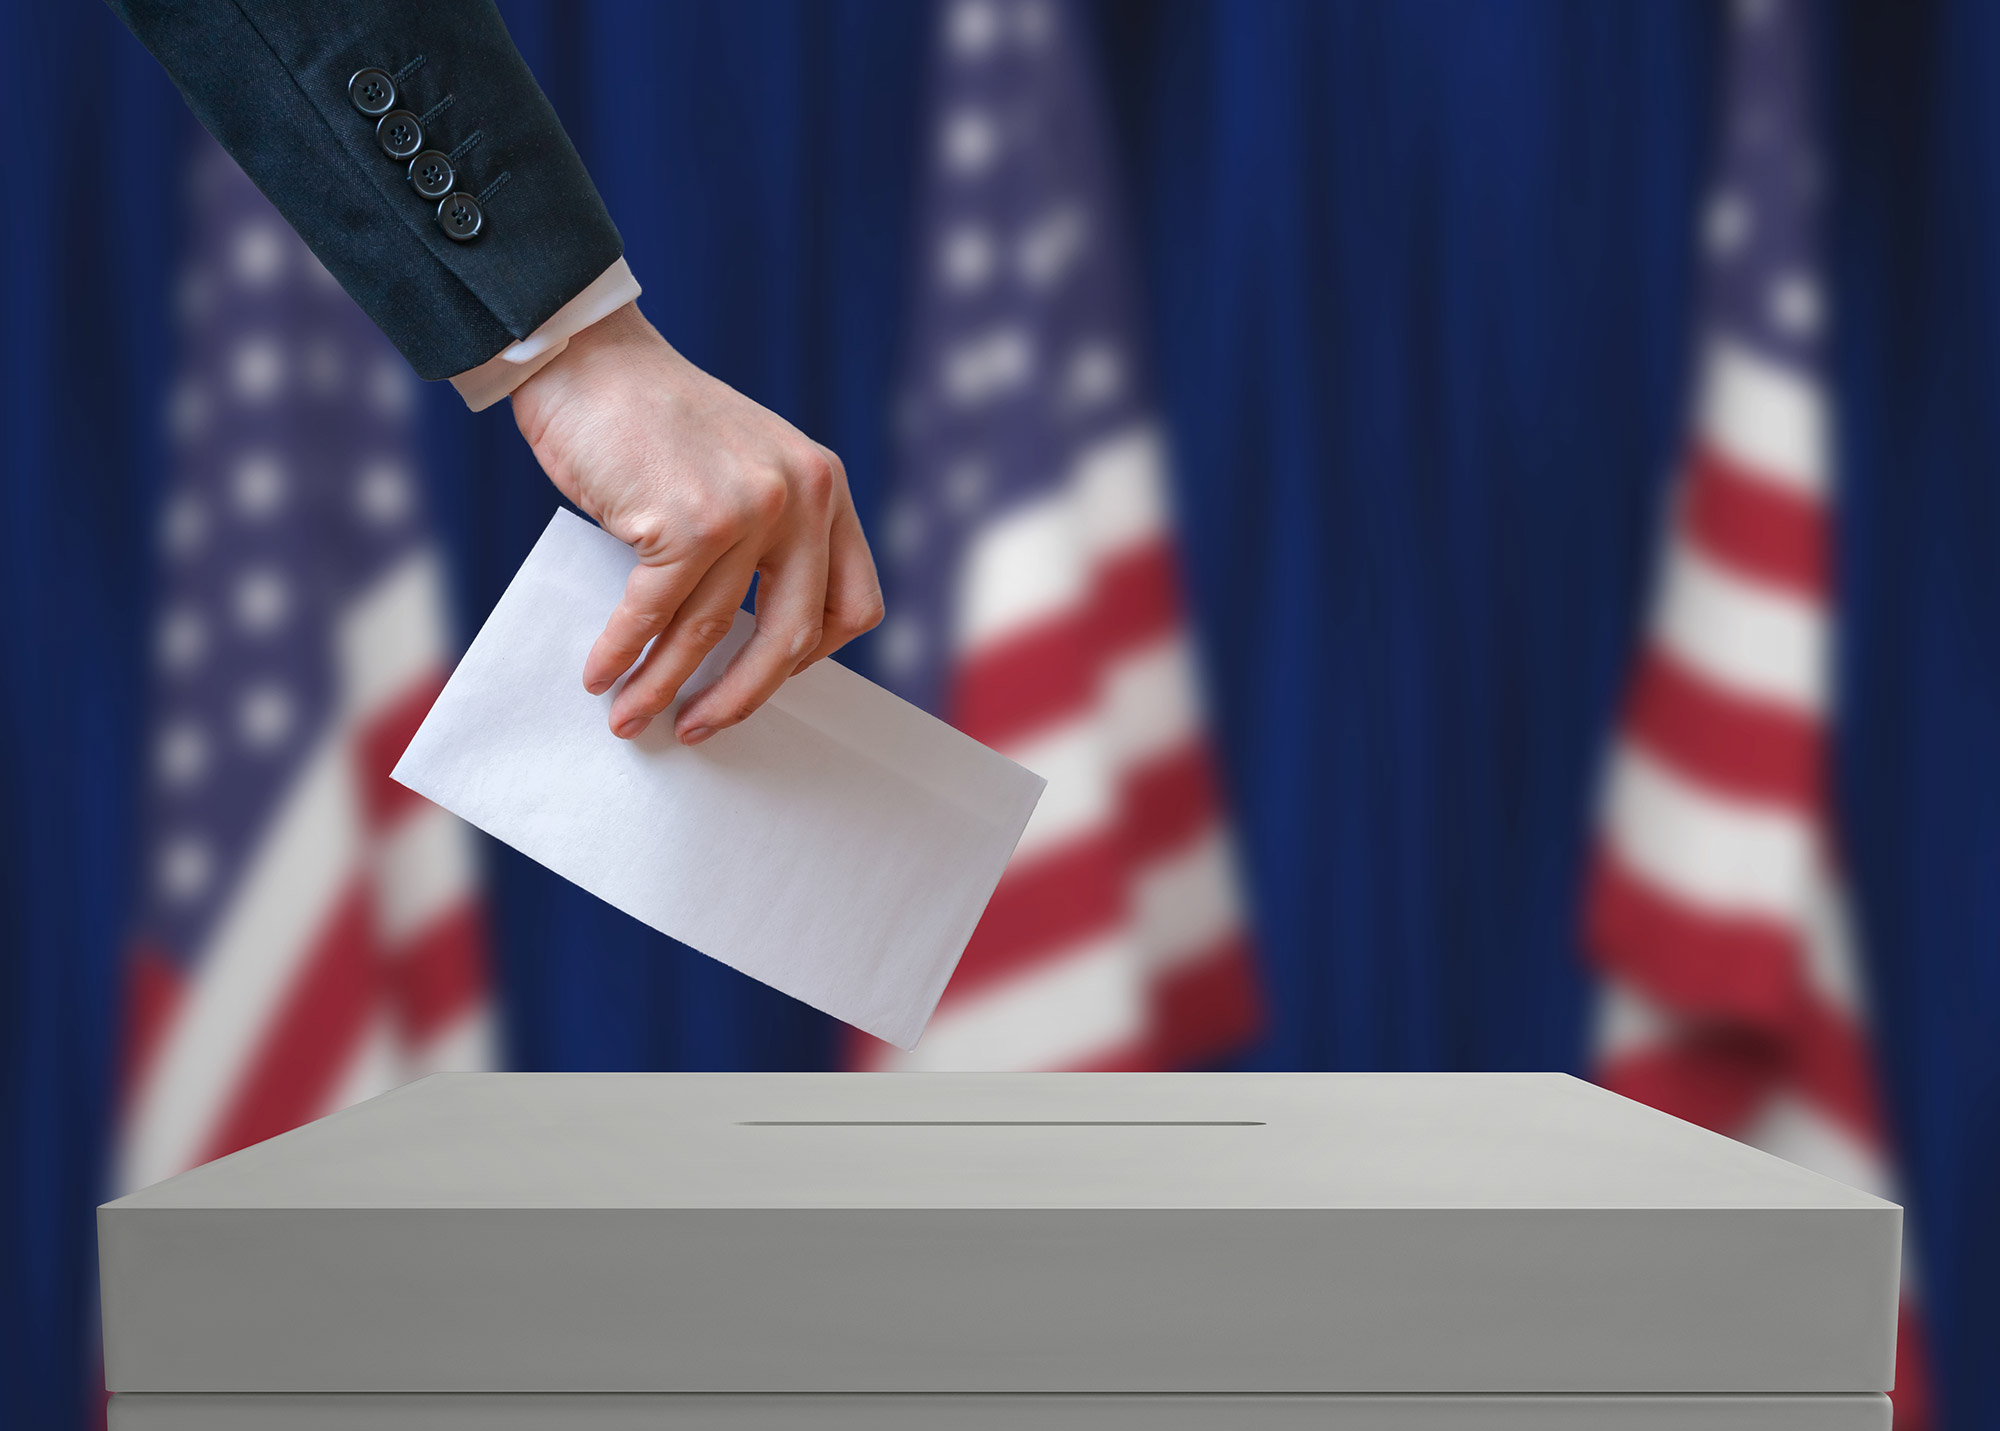 Voter-holds-envelope-in-hand-above-vote-ballot